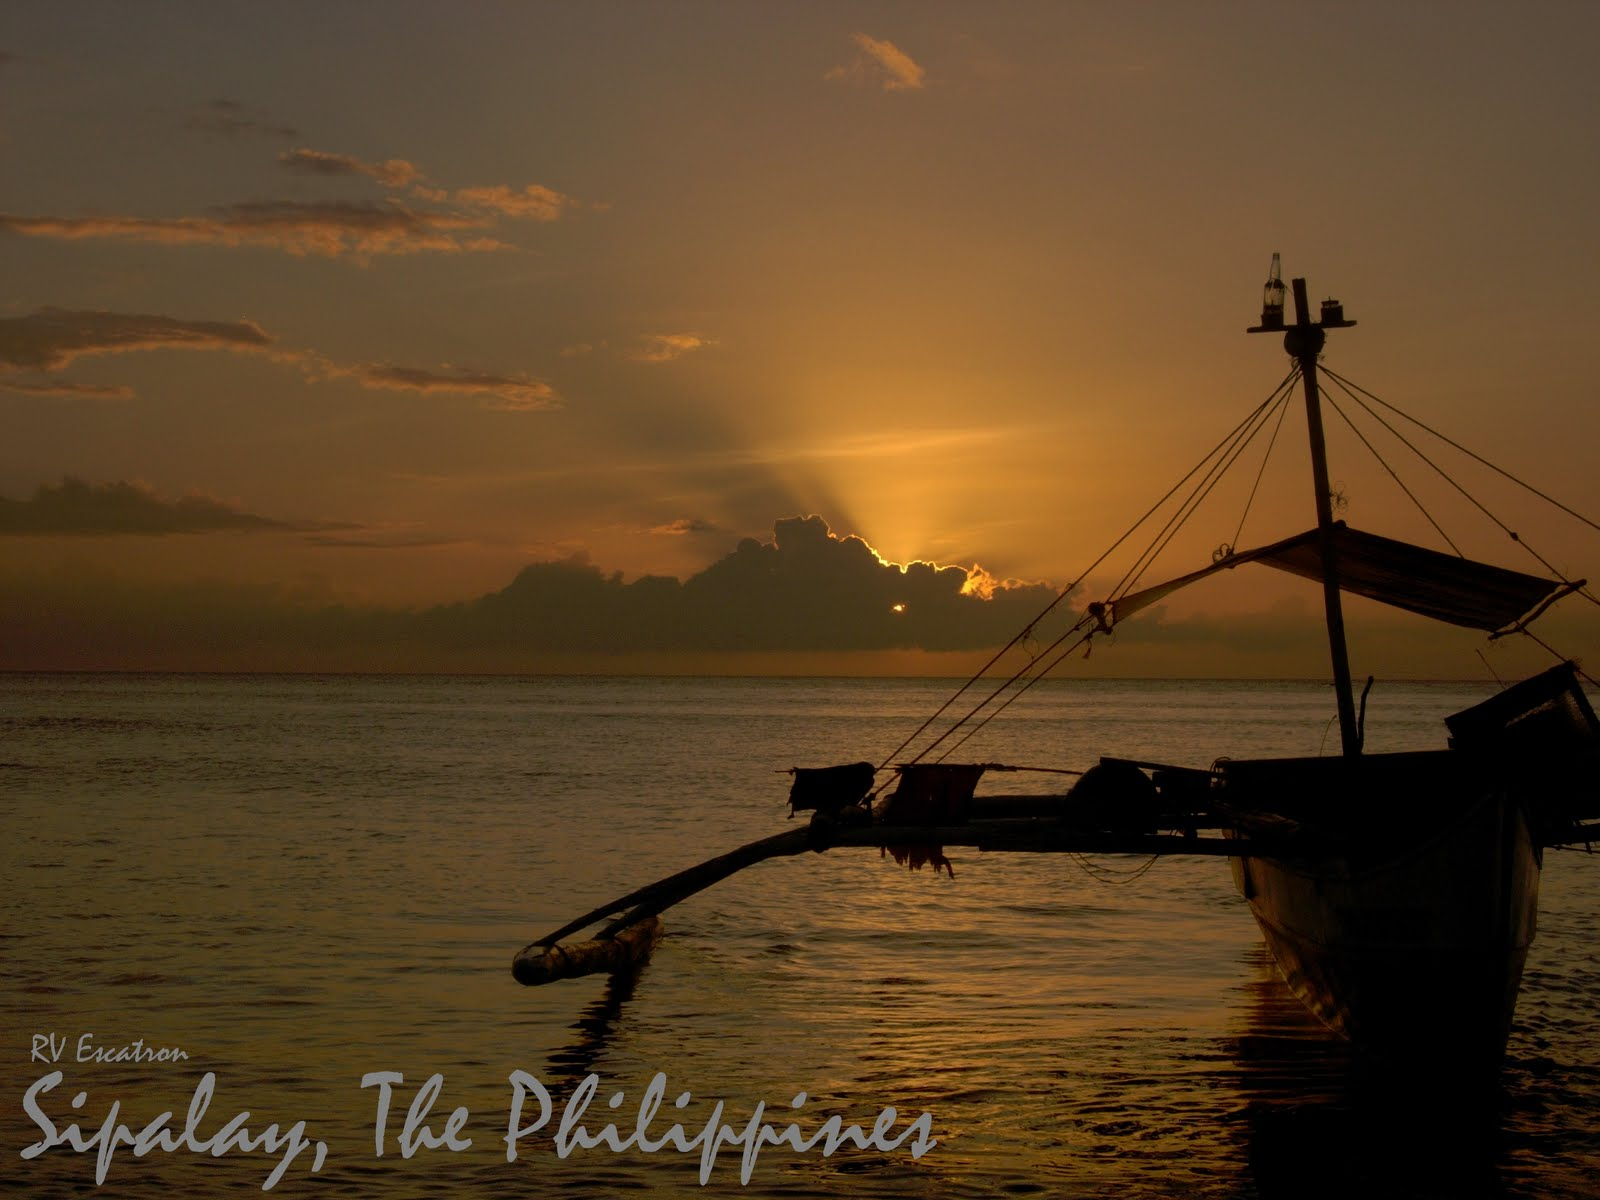 sipalay+146 - A view of Sipalay, Negros Occidental - Philippine Photo Gallery